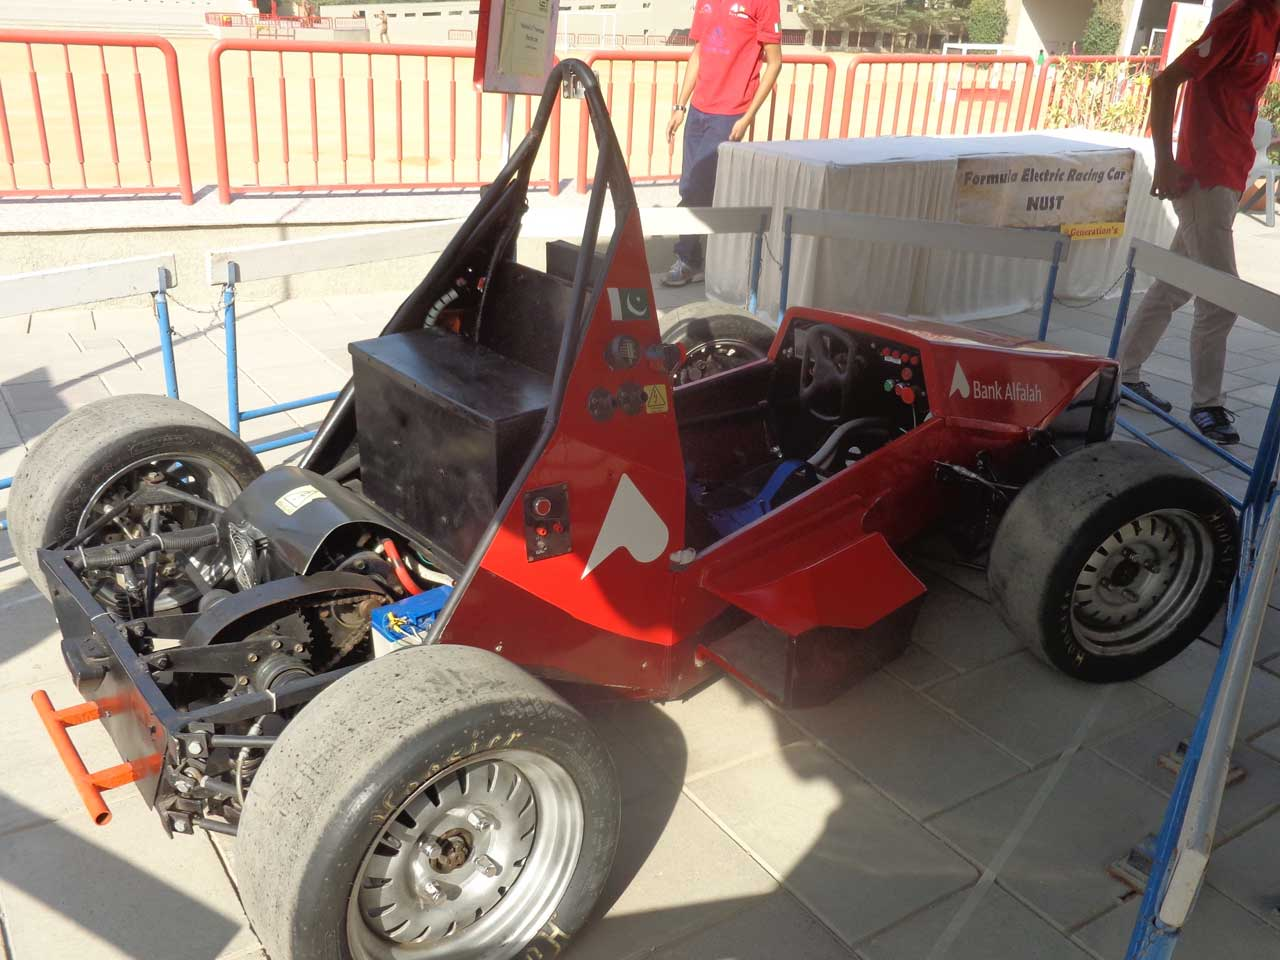 Formula Electric Racing Car - Built by NUST Students